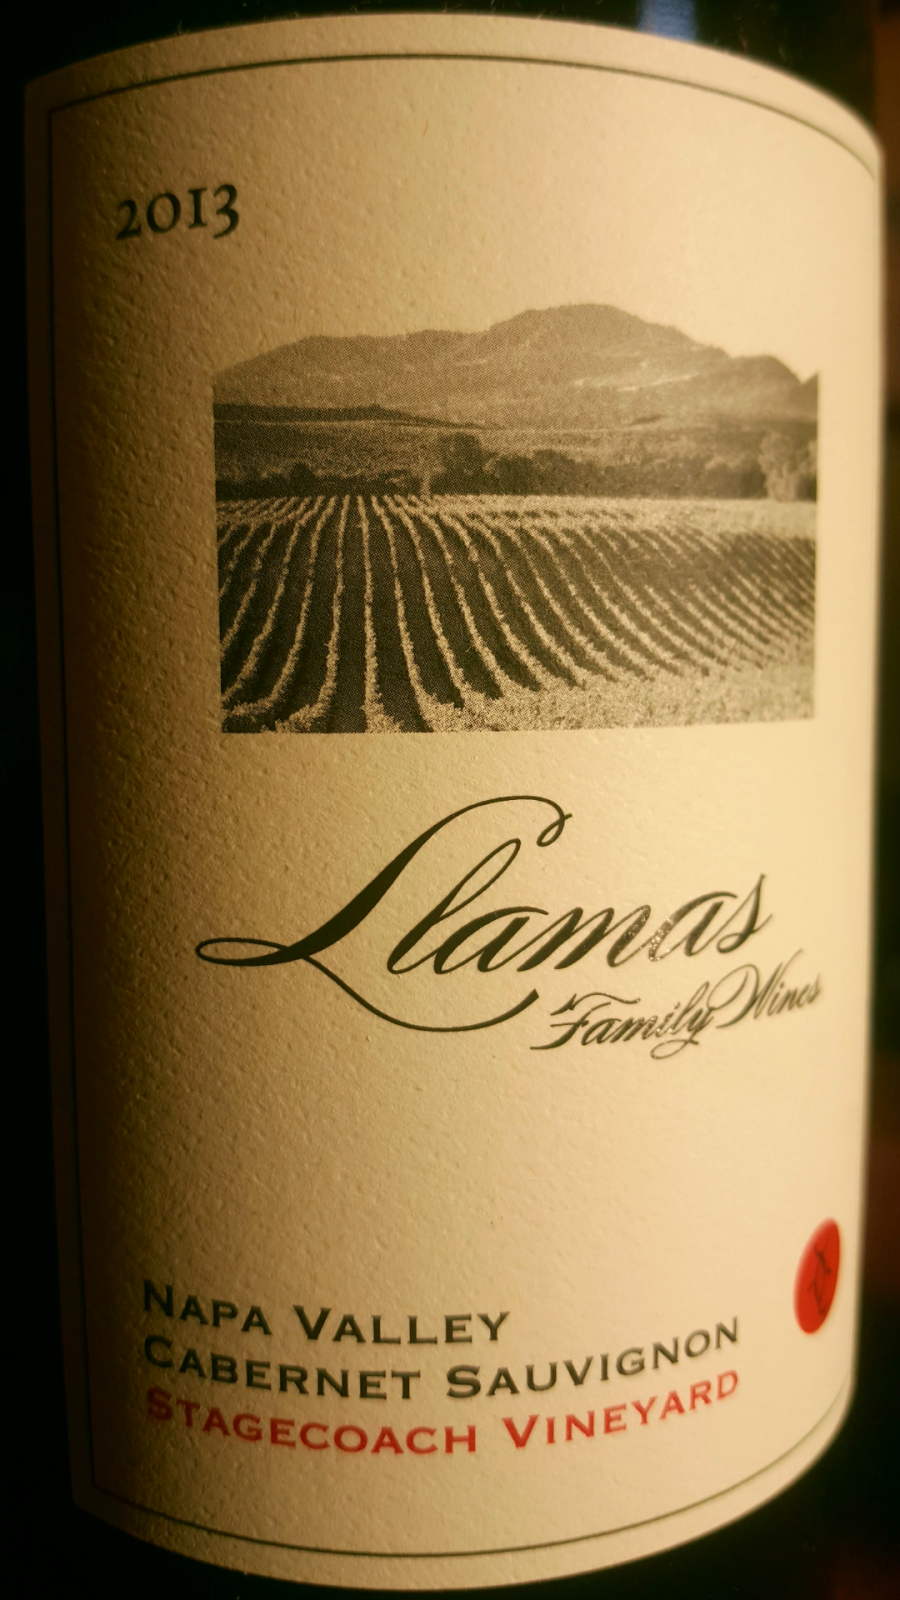 2013 Llamas Family Stagecoach Vineyards Cabernet Sauvignon Pritchard Hill Block I2B - Llamas Family Wines